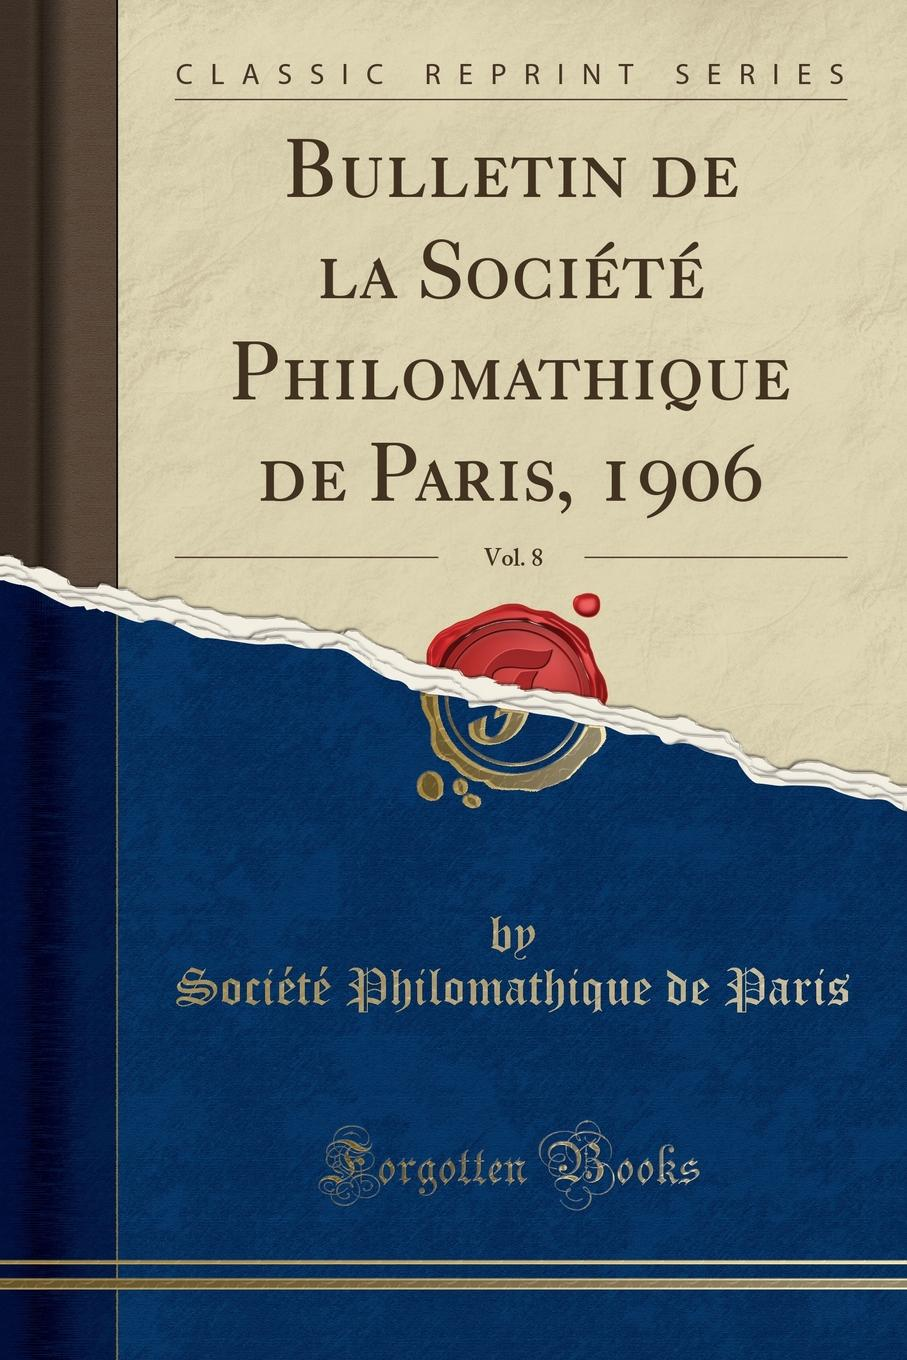 Société Philomathique de Paris Bulletin de la Societe Philomathique de Paris, 1906, Vol. 8 (Classic Reprint)